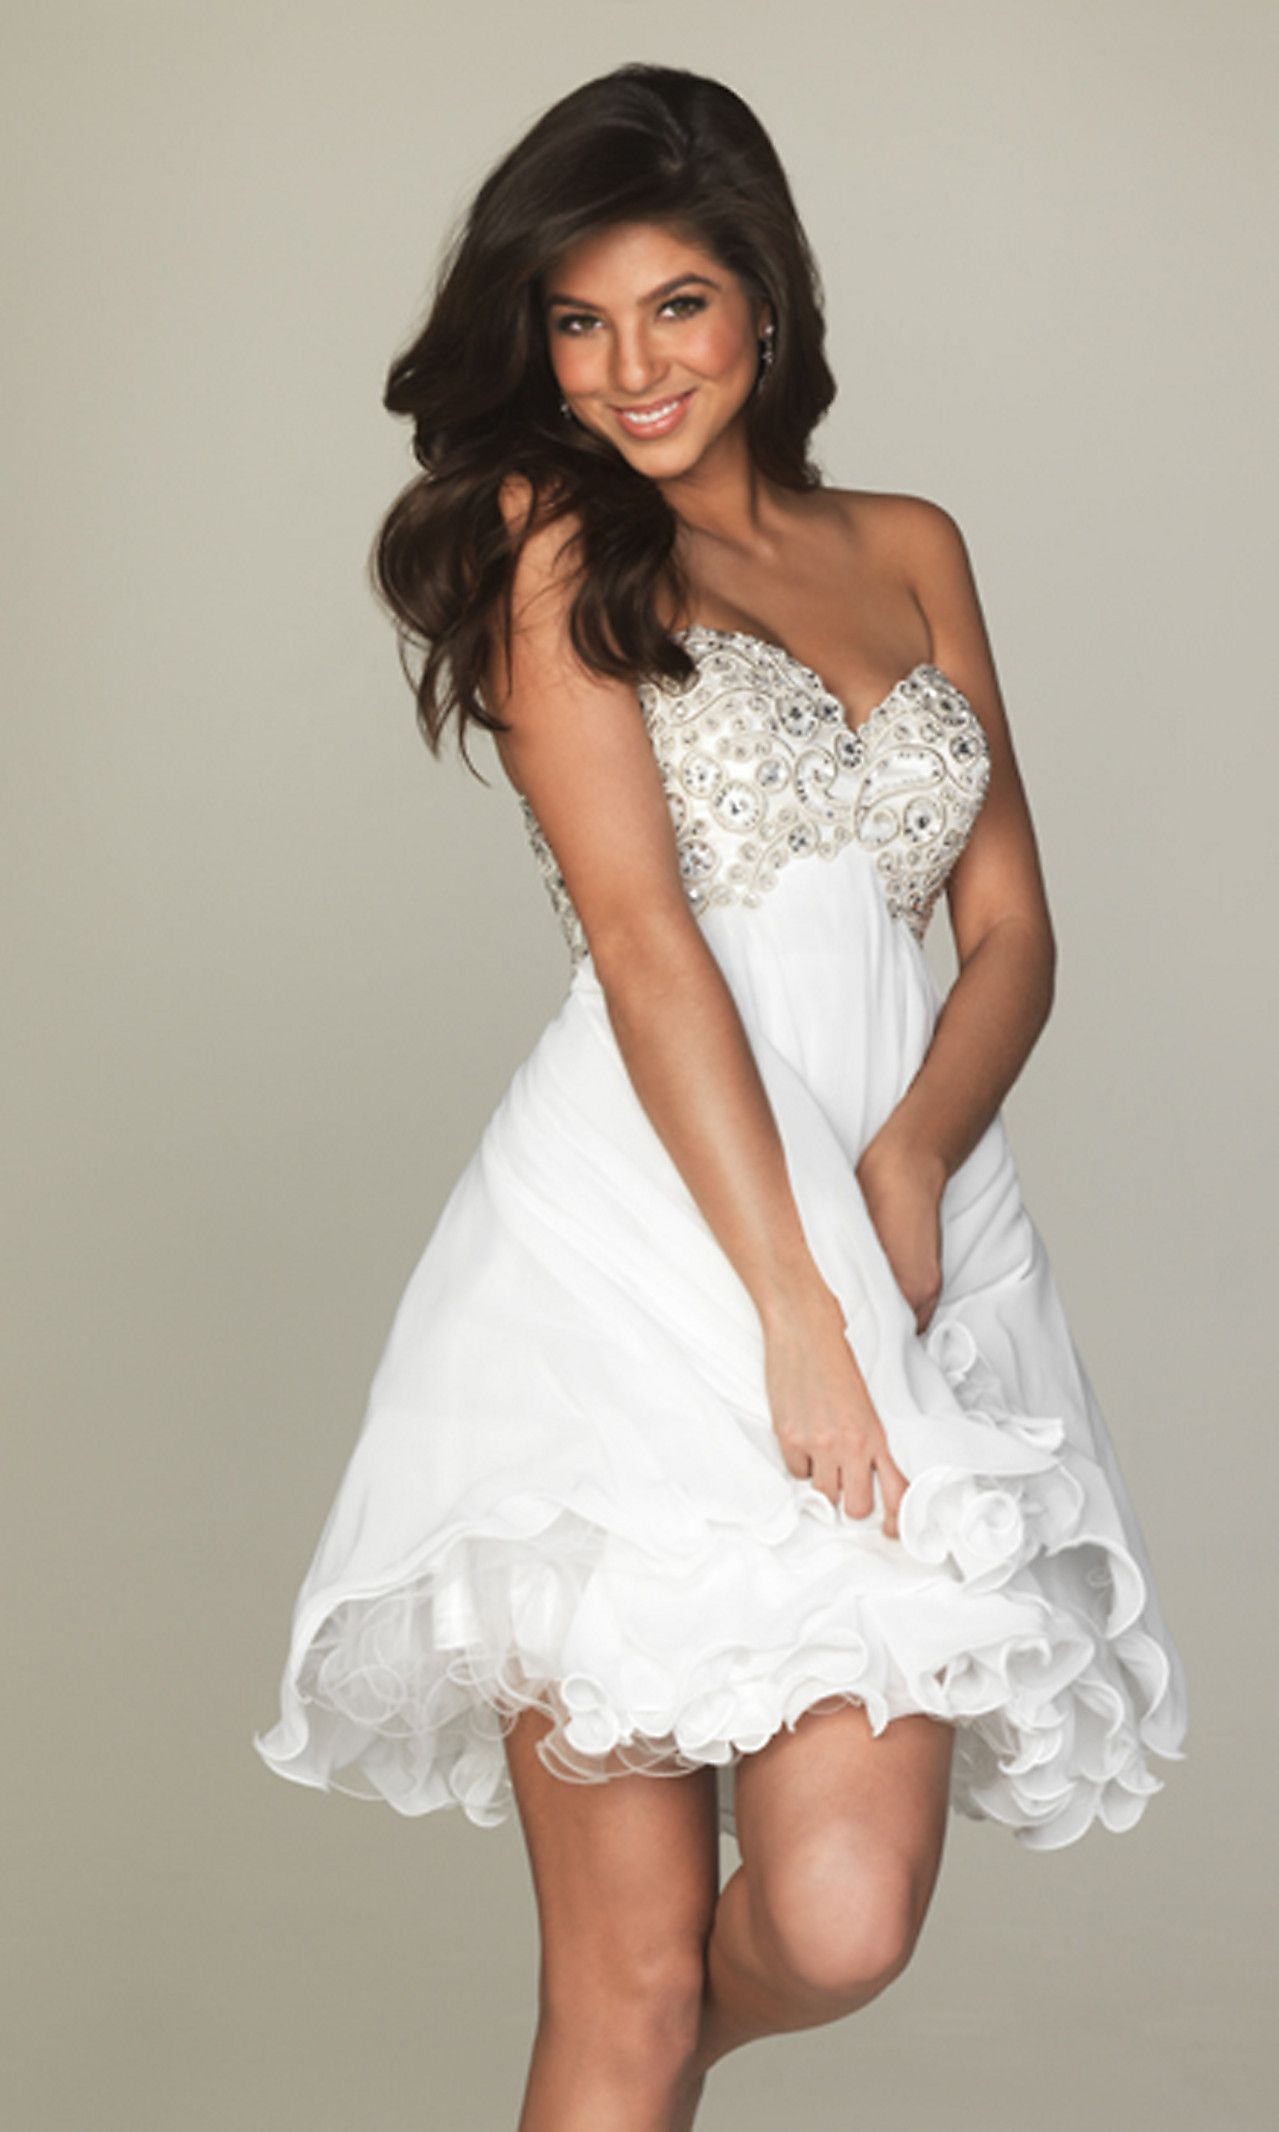 White dress cocktail party - Find This Pin And More On All White Party Dress